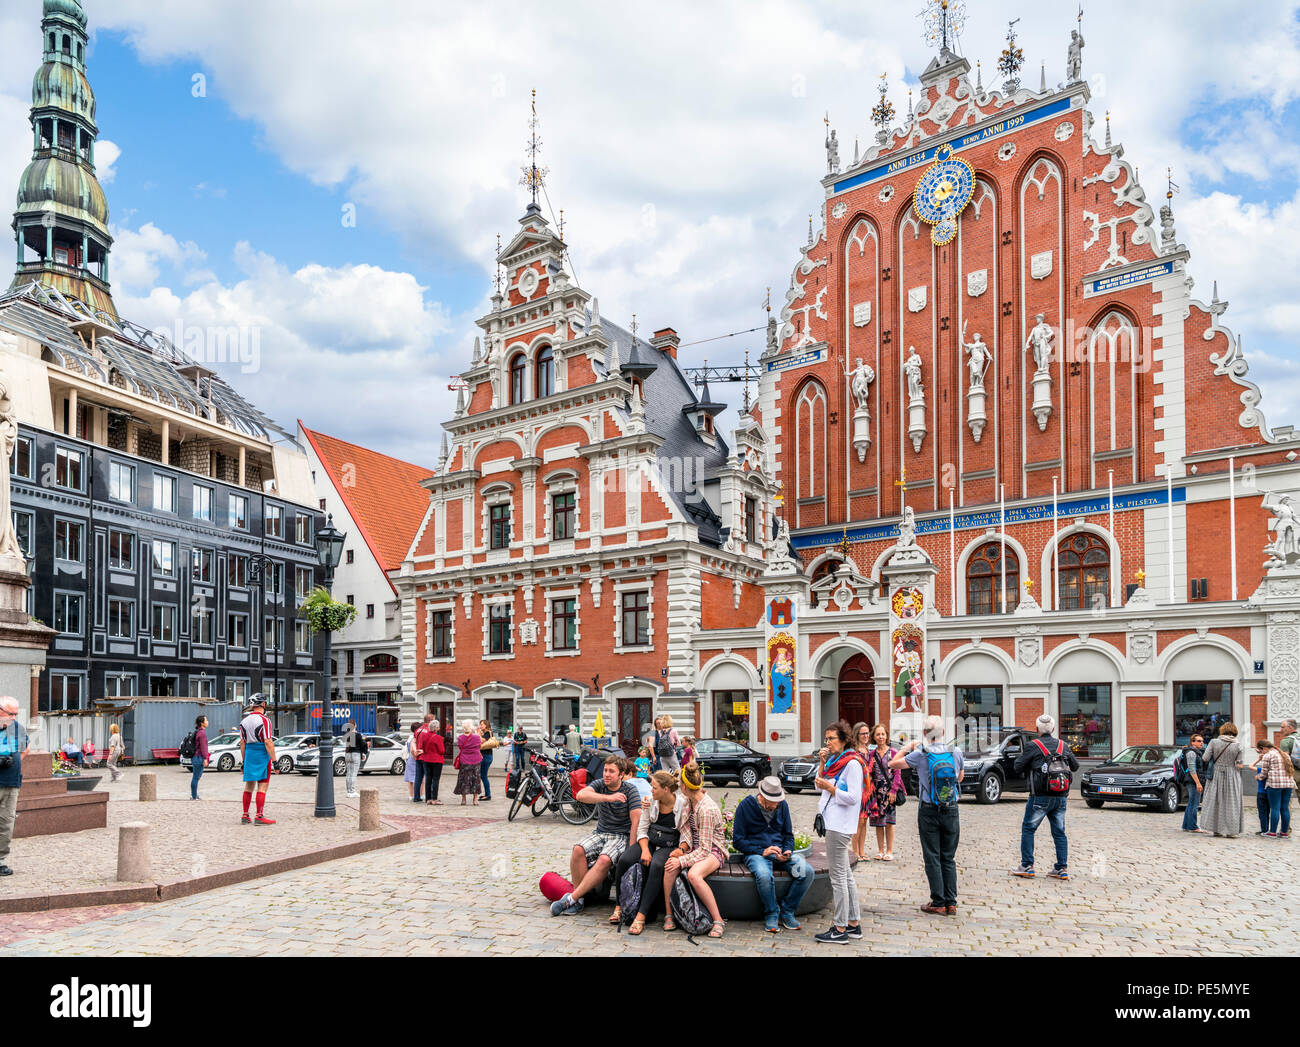 House of the Blackheads (Melngalvju Nams), historic building built in 1334 and reconstructed in 1999, Rātslaukums (Town Hall Square), Old Riga, Latvia - Stock Image